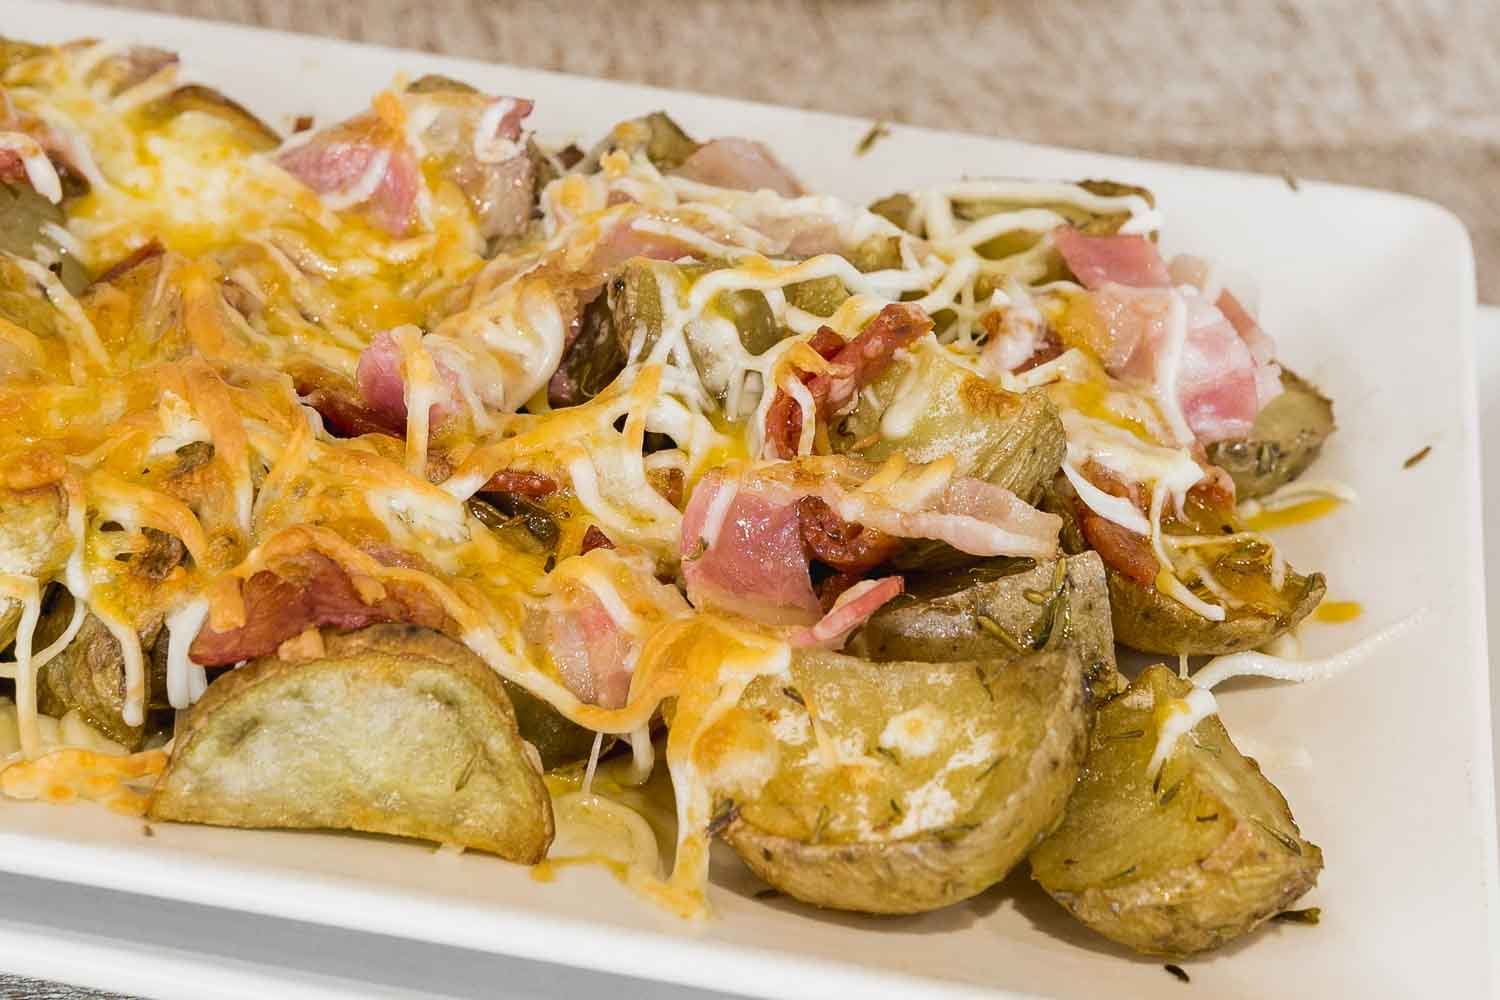 Potatoes with cheese, bacon and pepperoni